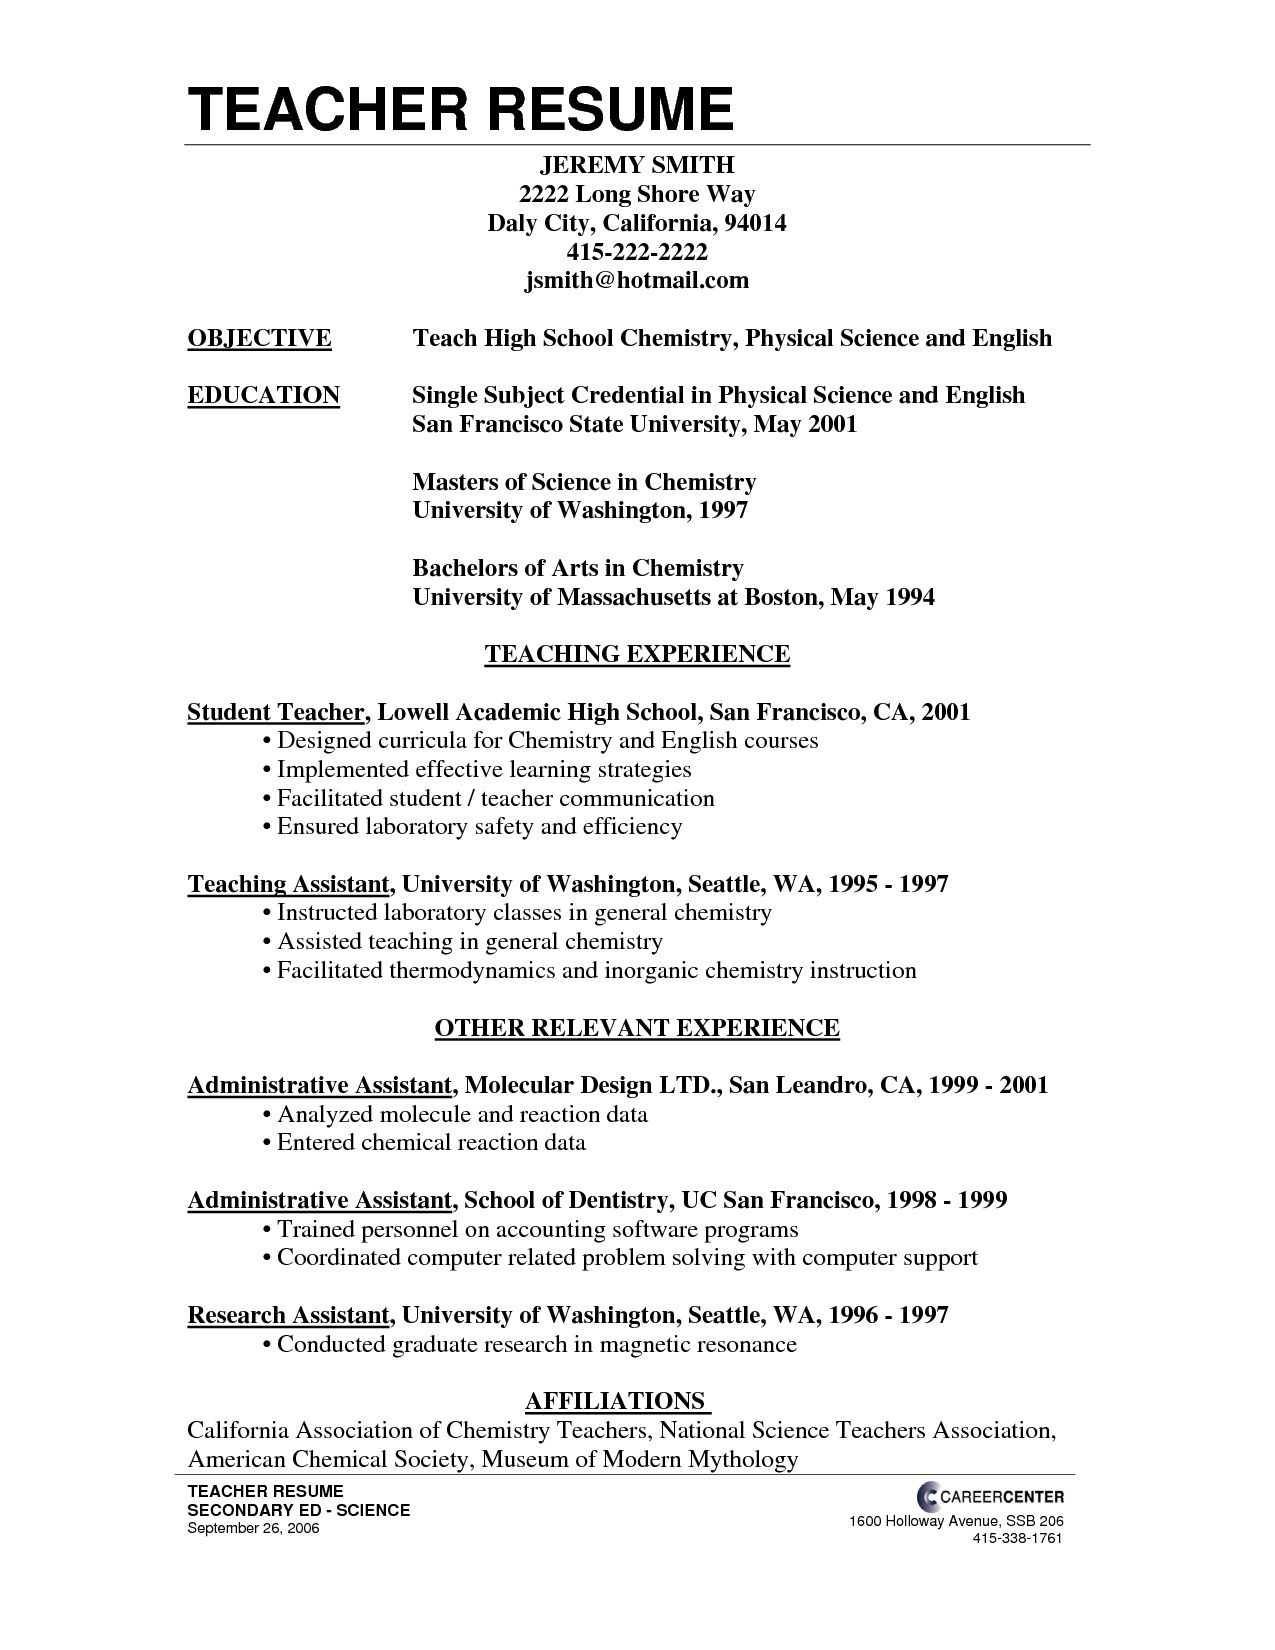 school teacher resume format - Resume Examples Education